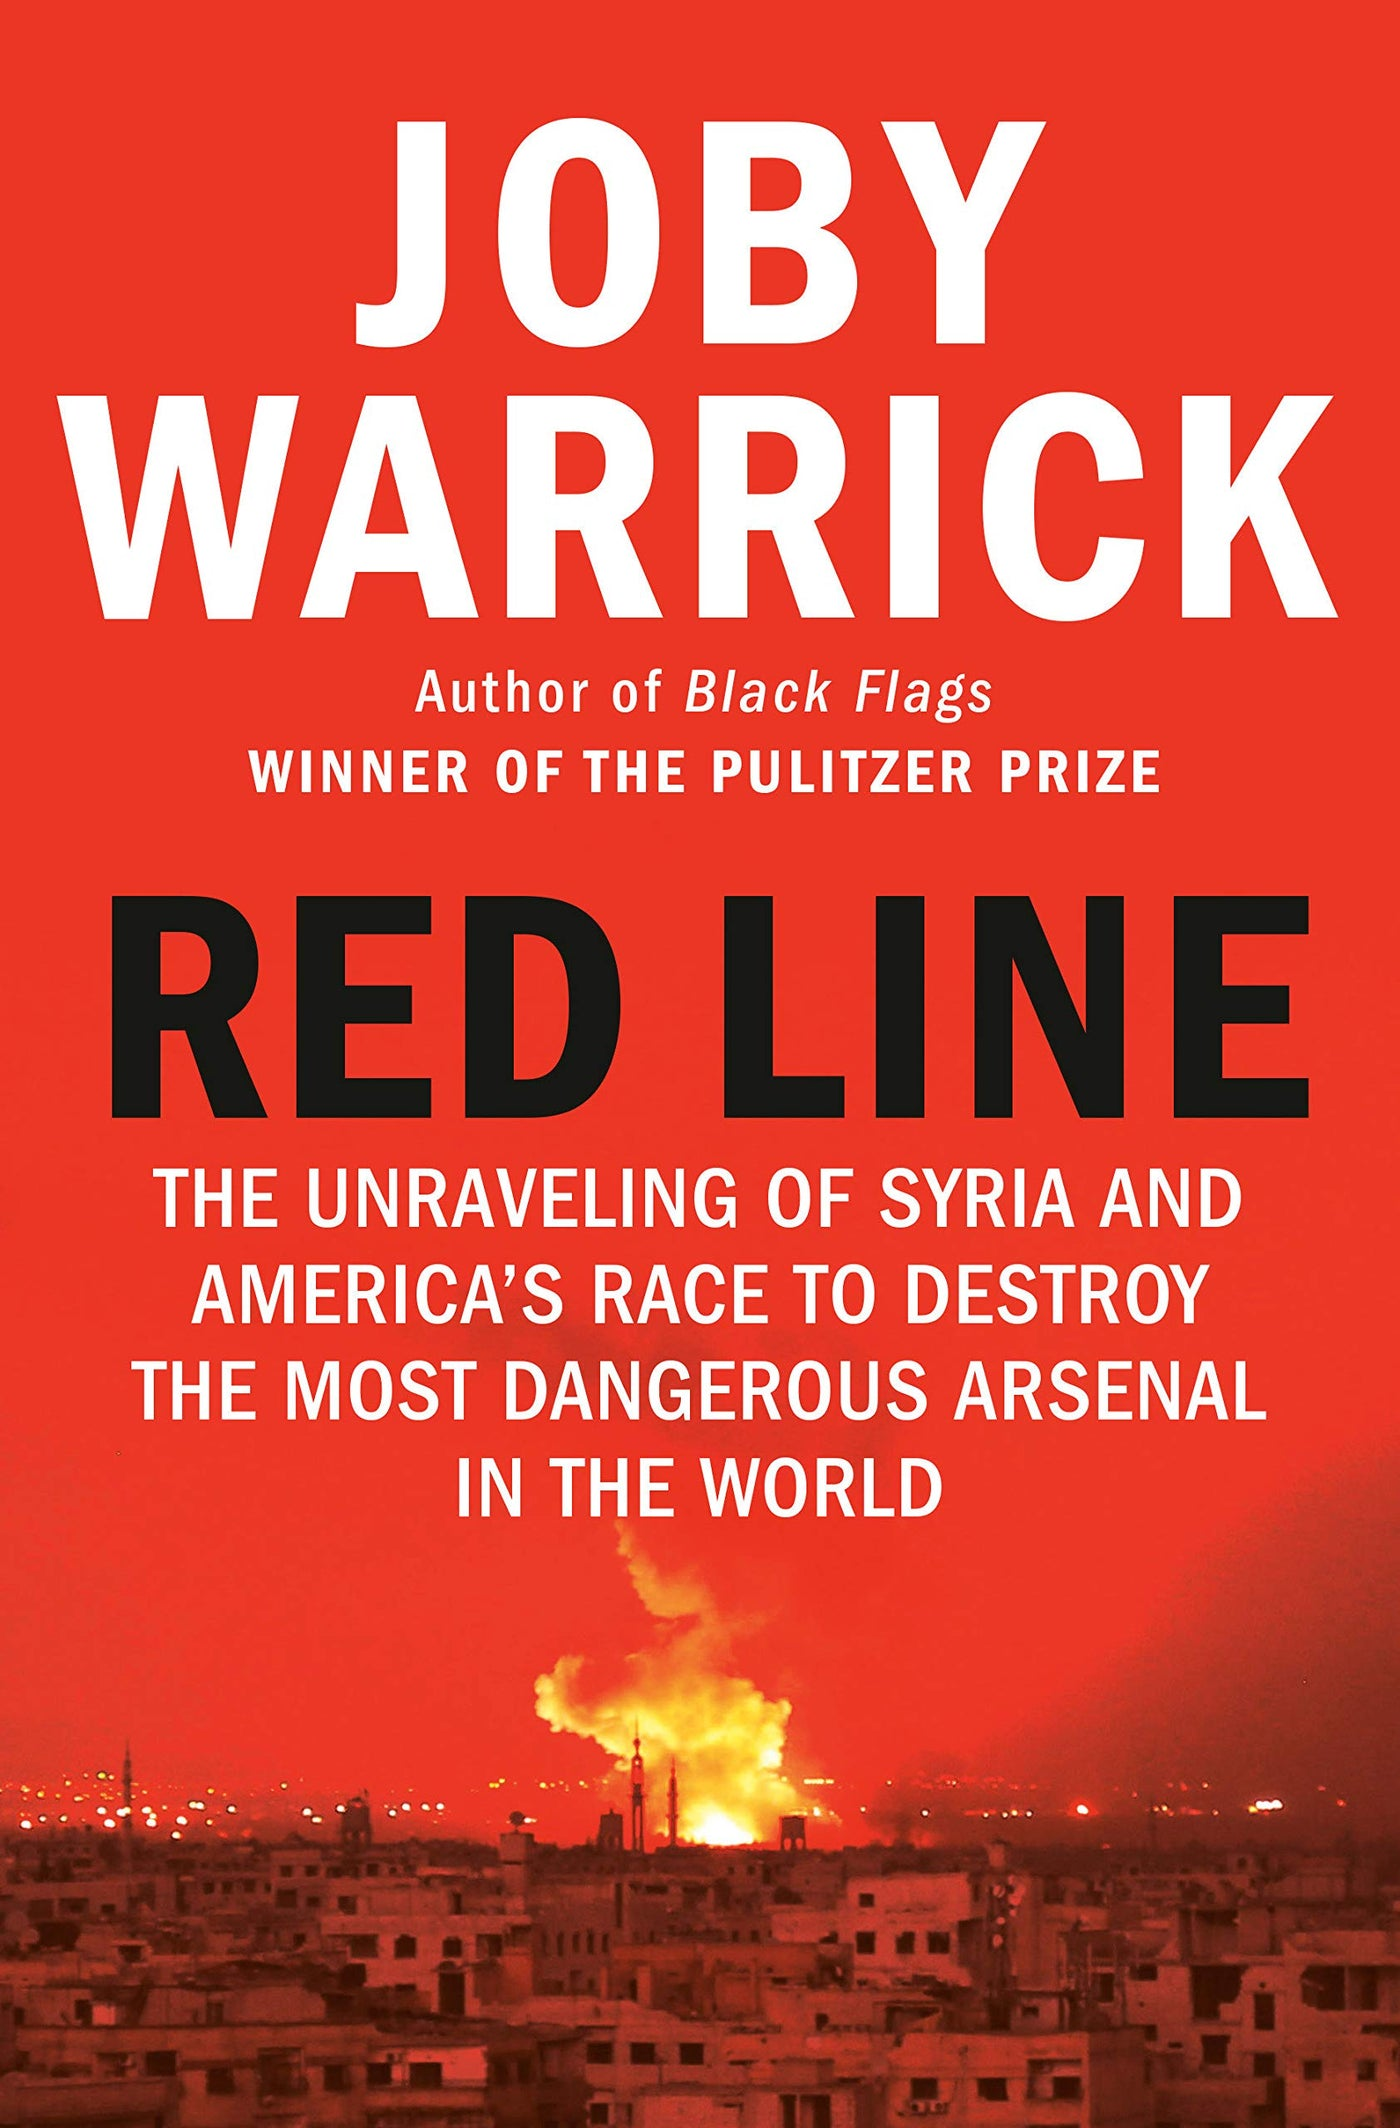 Red Line: The Unraveling of Syria and America's Race to Destroy the Most Dangerous Arsenal in the World by Joby Warrick